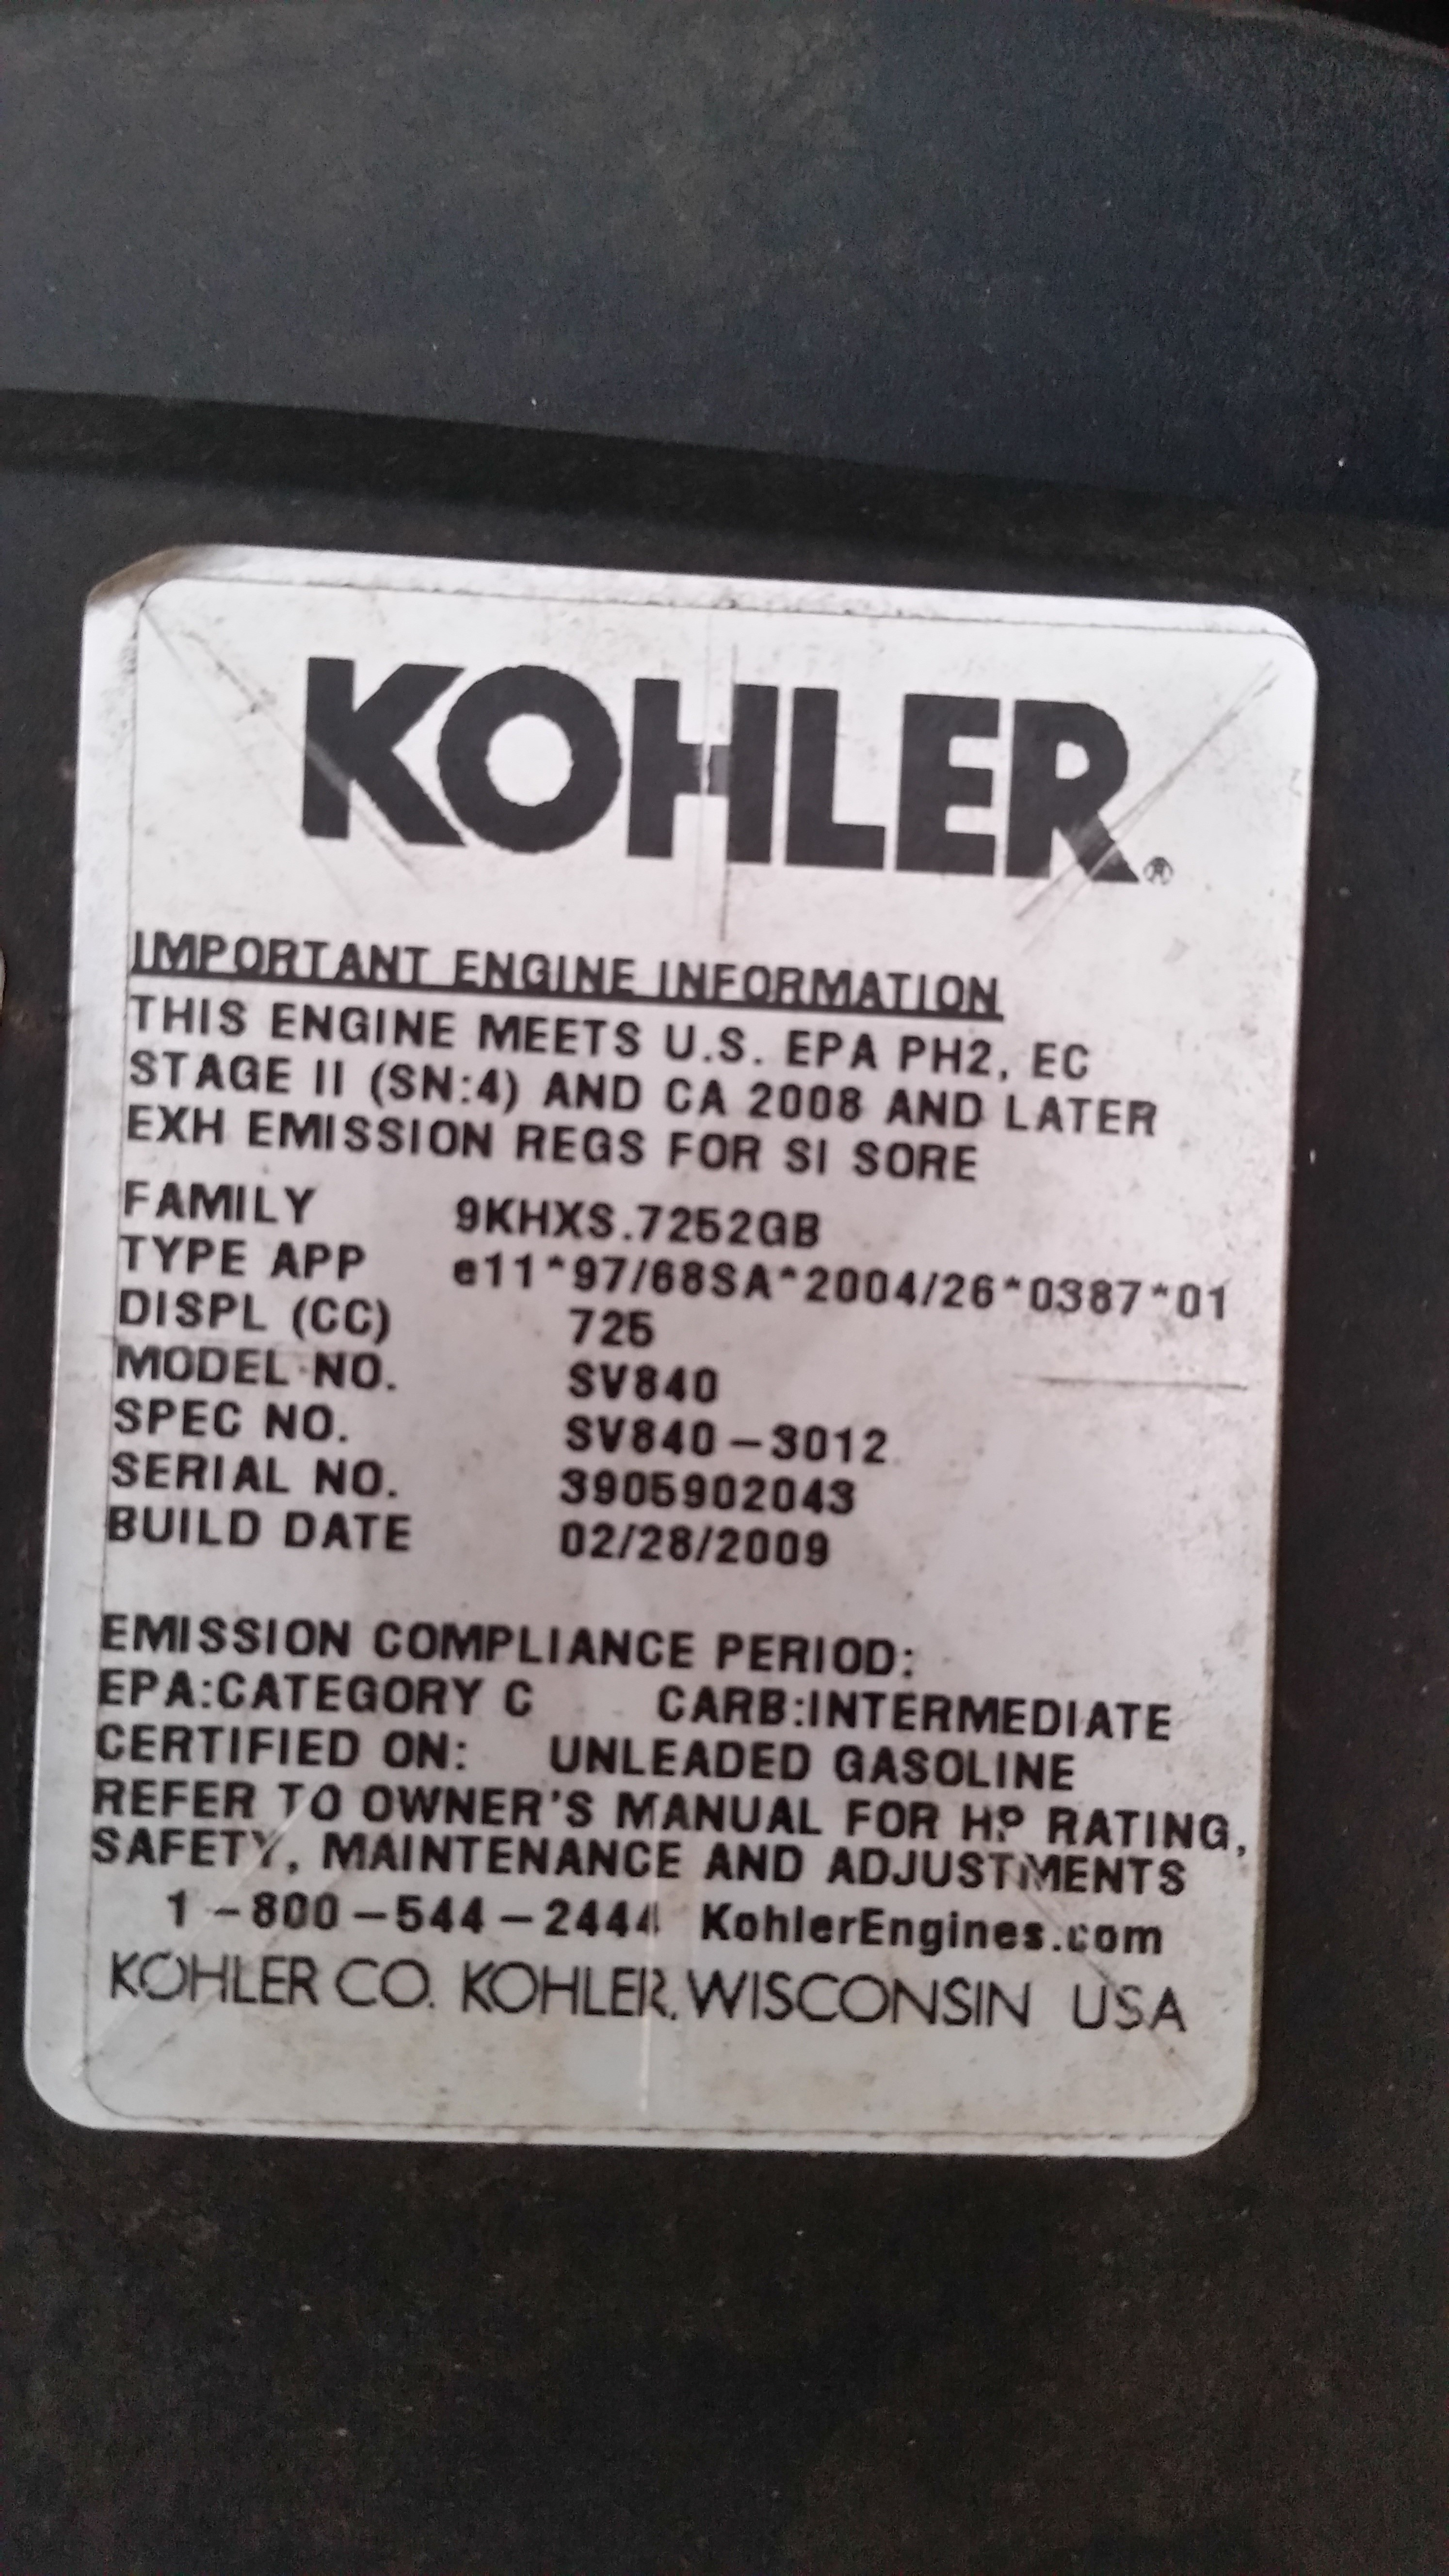 Ok The Last Question Was To Easy Im Working On A Kohler Sv840 Cv22s Wiring Diagram Bad Boy 3